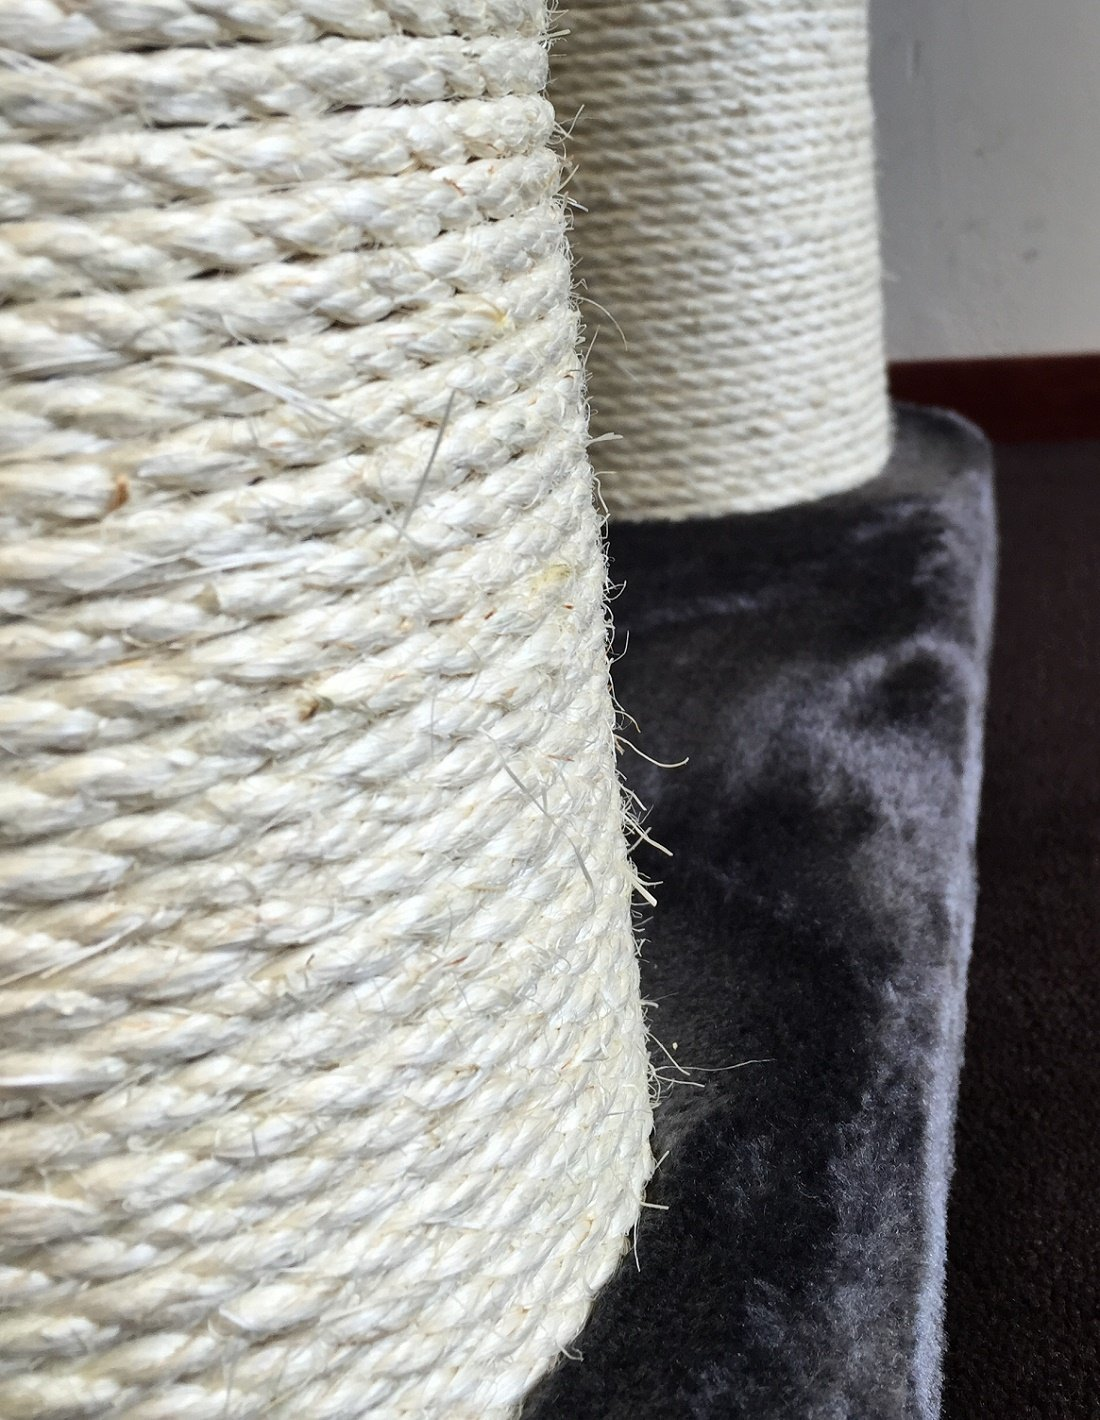 Amazon.com : Cat Tree for Large Cats - Cat Empire Dark Grey - 72 inch 143 lbs 6 inch Ø poles - Total size 72x47x24 inch - Cat Scratcher scratching post ...